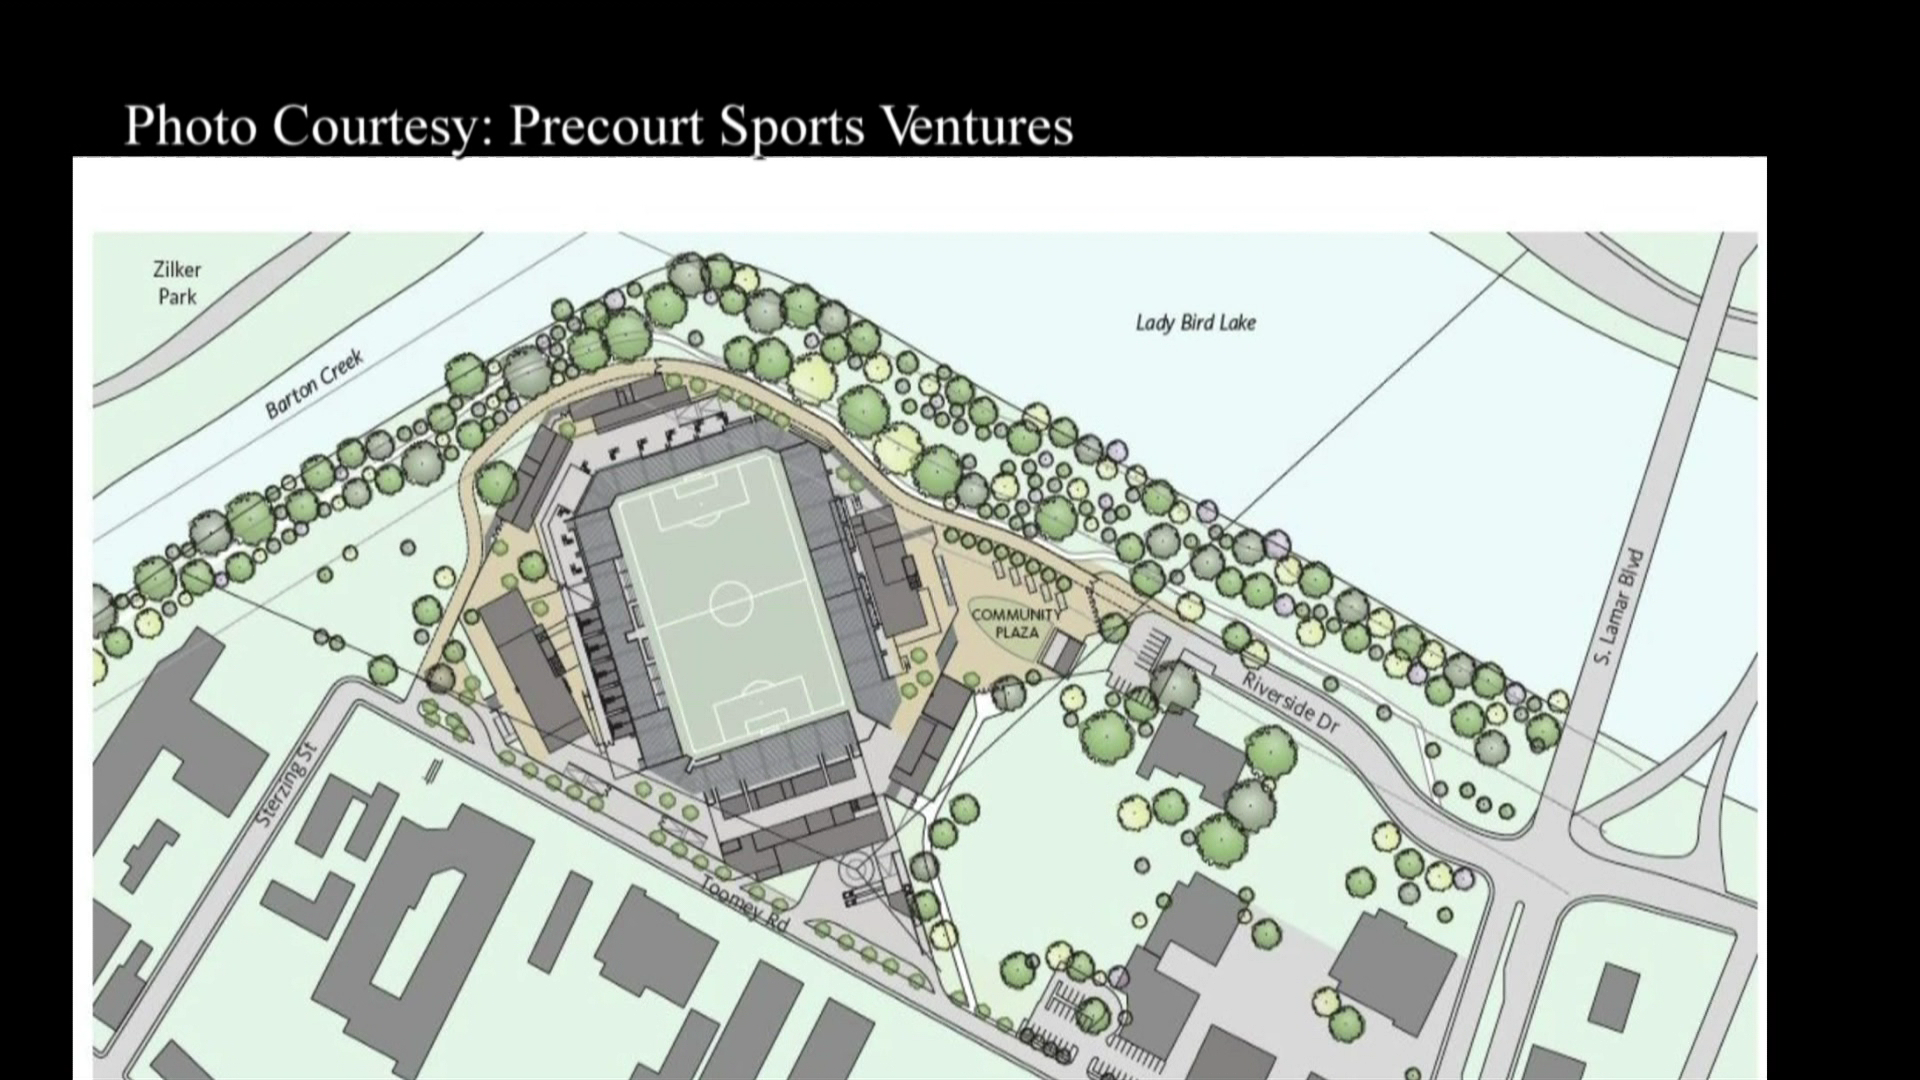 A Major League Soccer team owner is still eyeing Austin for their team's new home. Thursday they revealed a first look at potential downtown stadium. (Image courtesy: Precourt Sports Ventures)